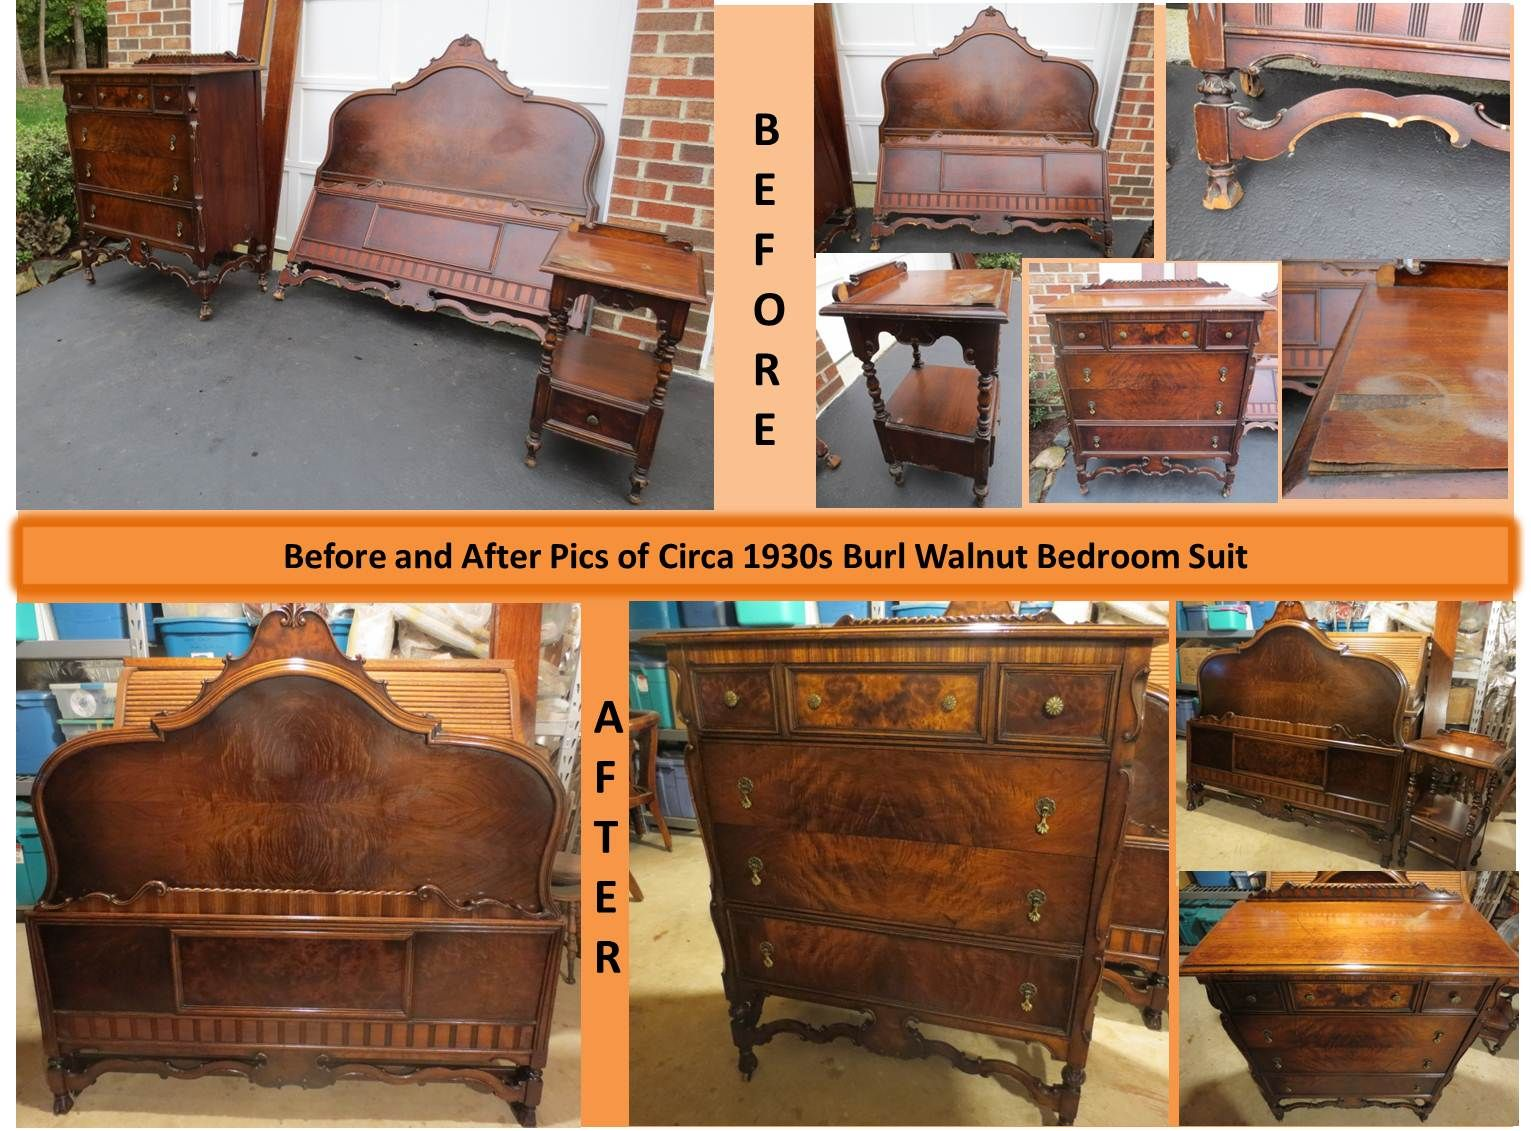 17 Best images about Restored Antique Furniture Projects on Pinterest    Radios  5 drawer dresser and Old antiques. 17 Best images about Restored Antique Furniture Projects on